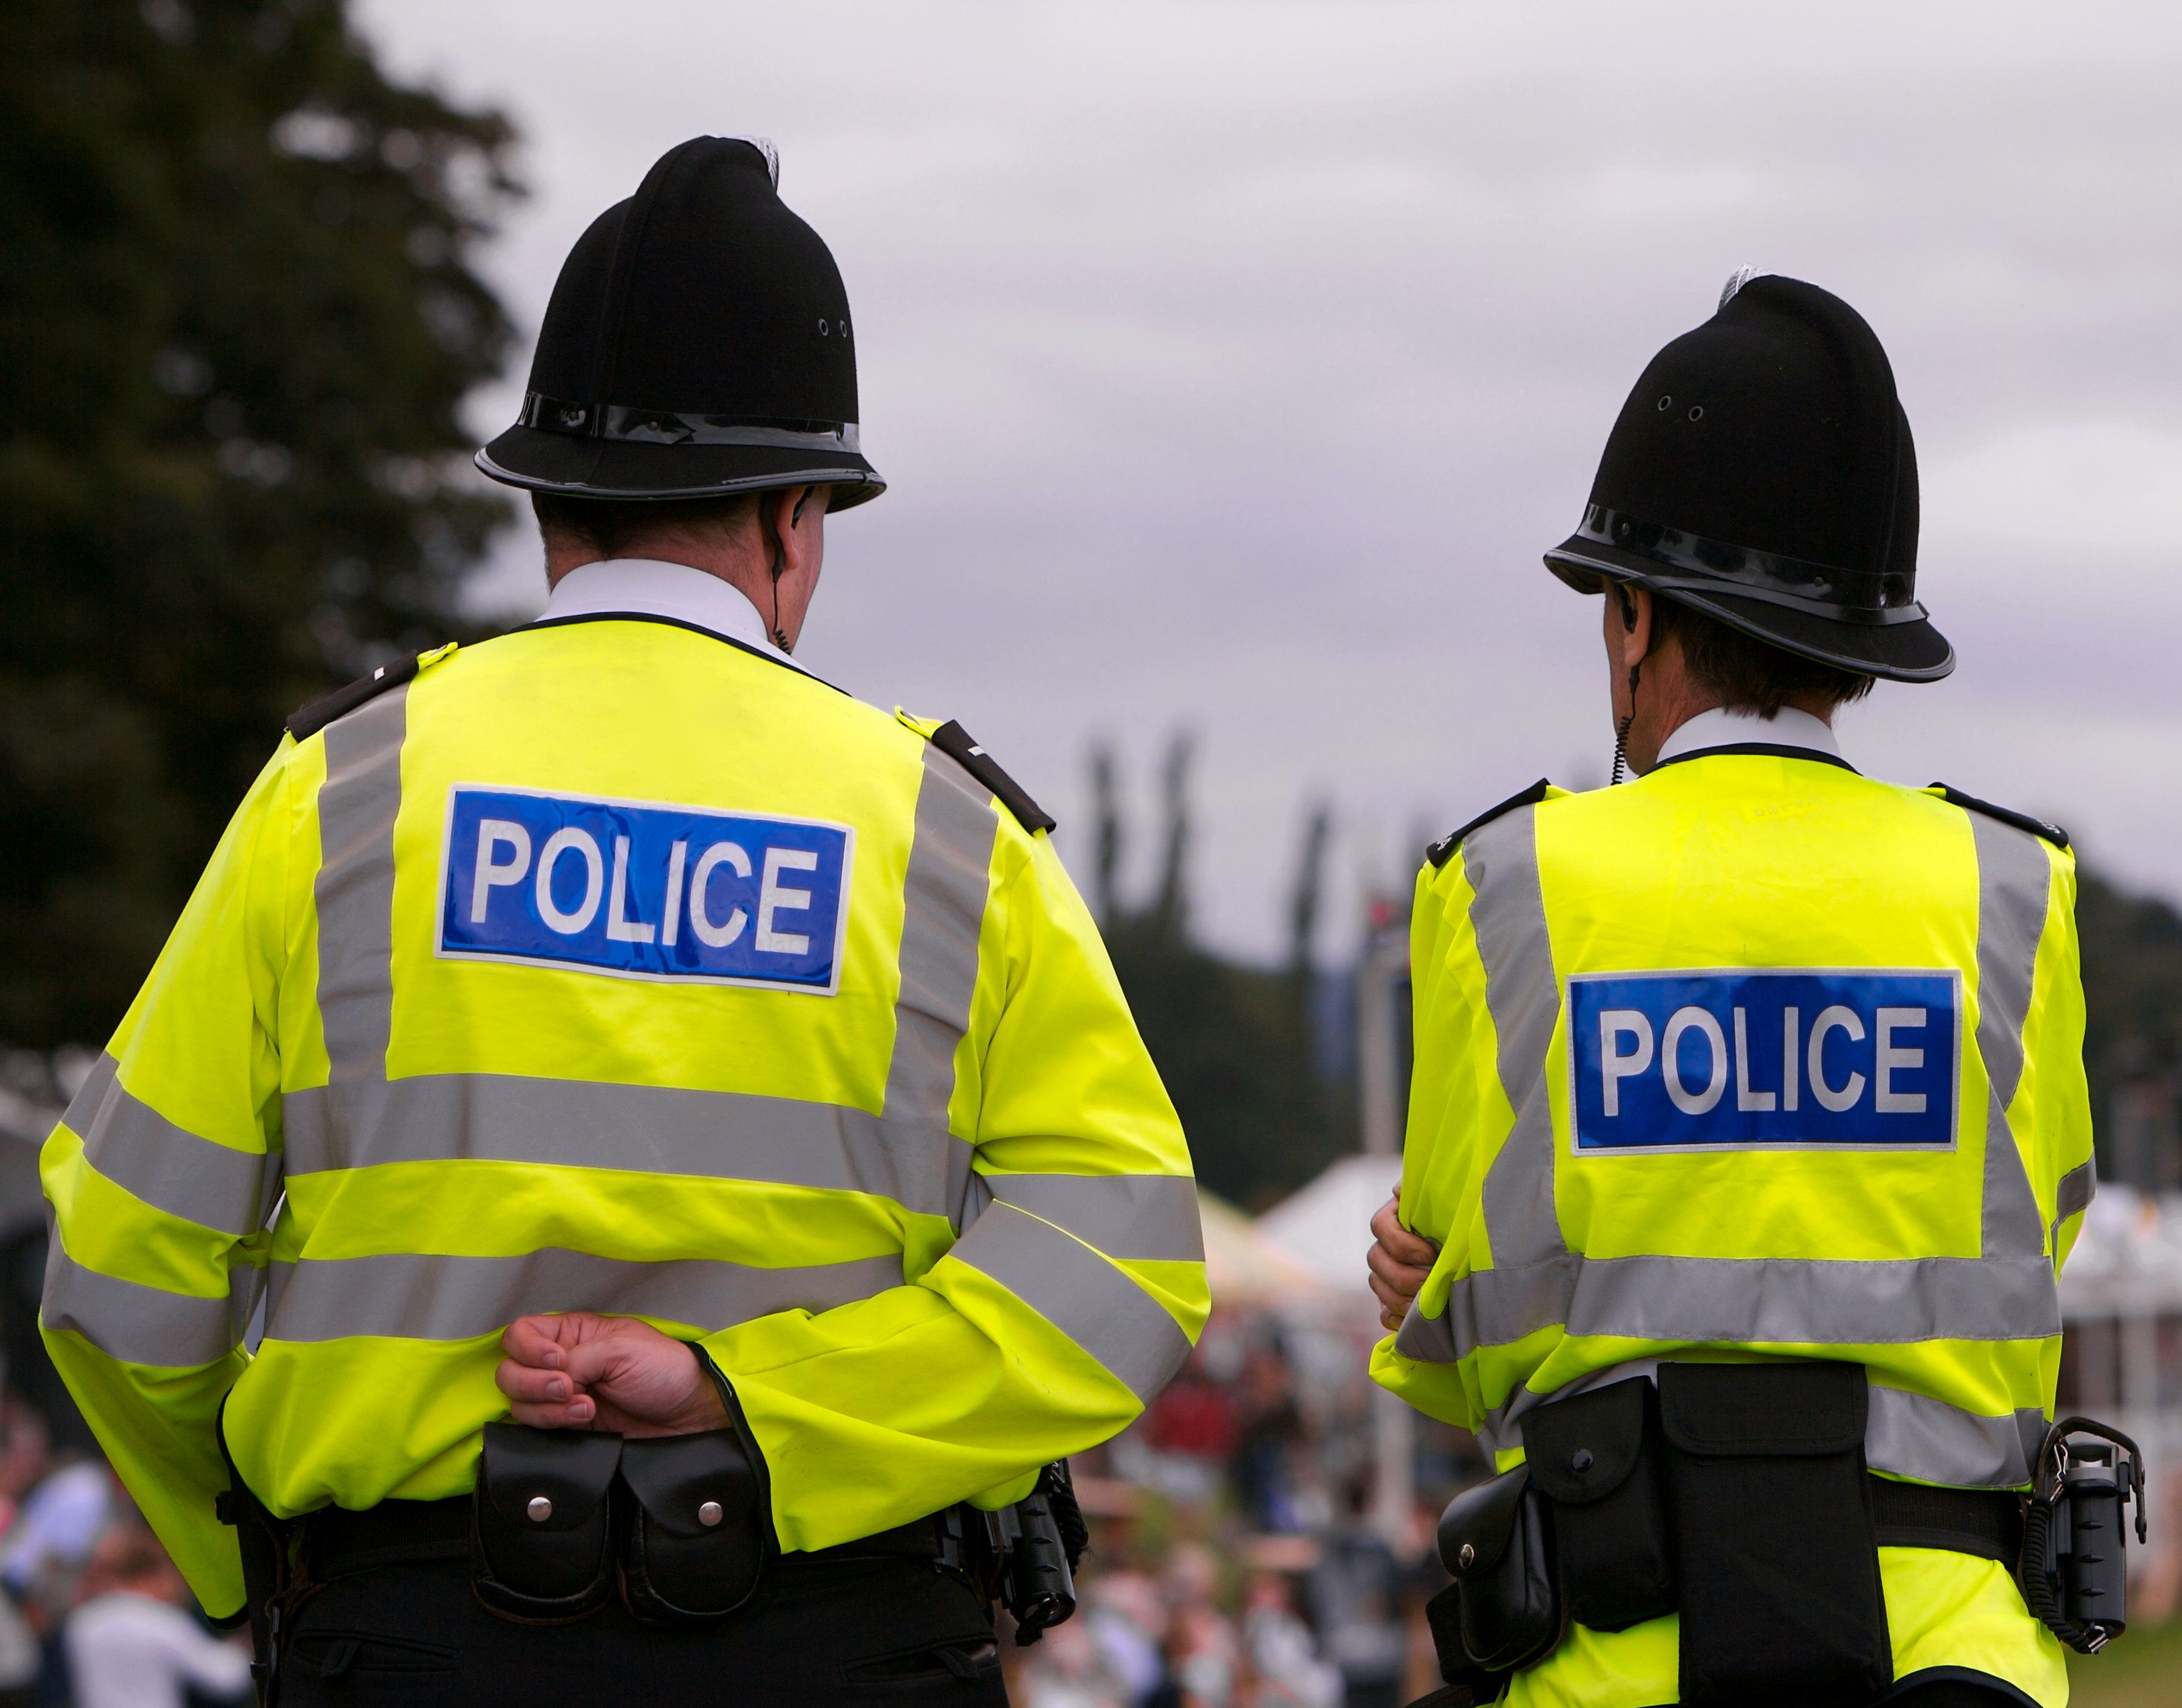 A major police investigation in Newcastle saw 18 people convicted for child sexual